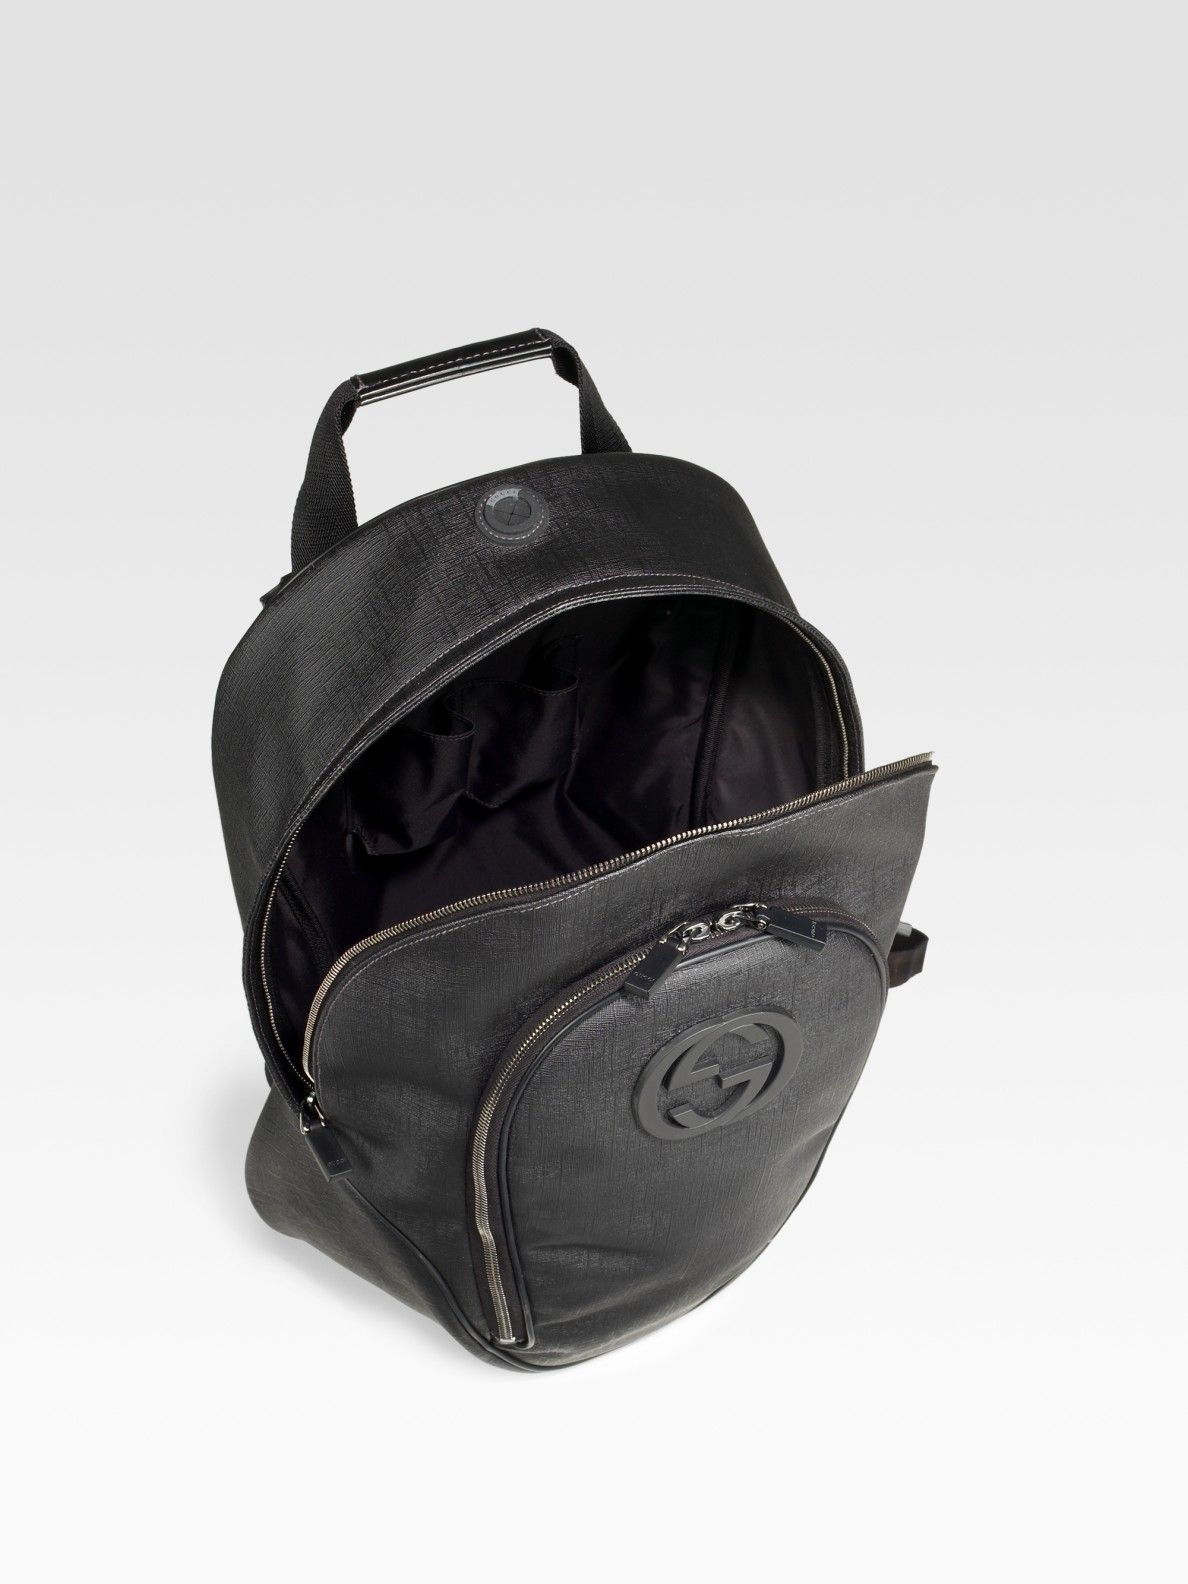 3f2a8a6e12b6e6 Men's Black Plus Backpack | Gucci Bag Wear | Gucci black, Gucci ...